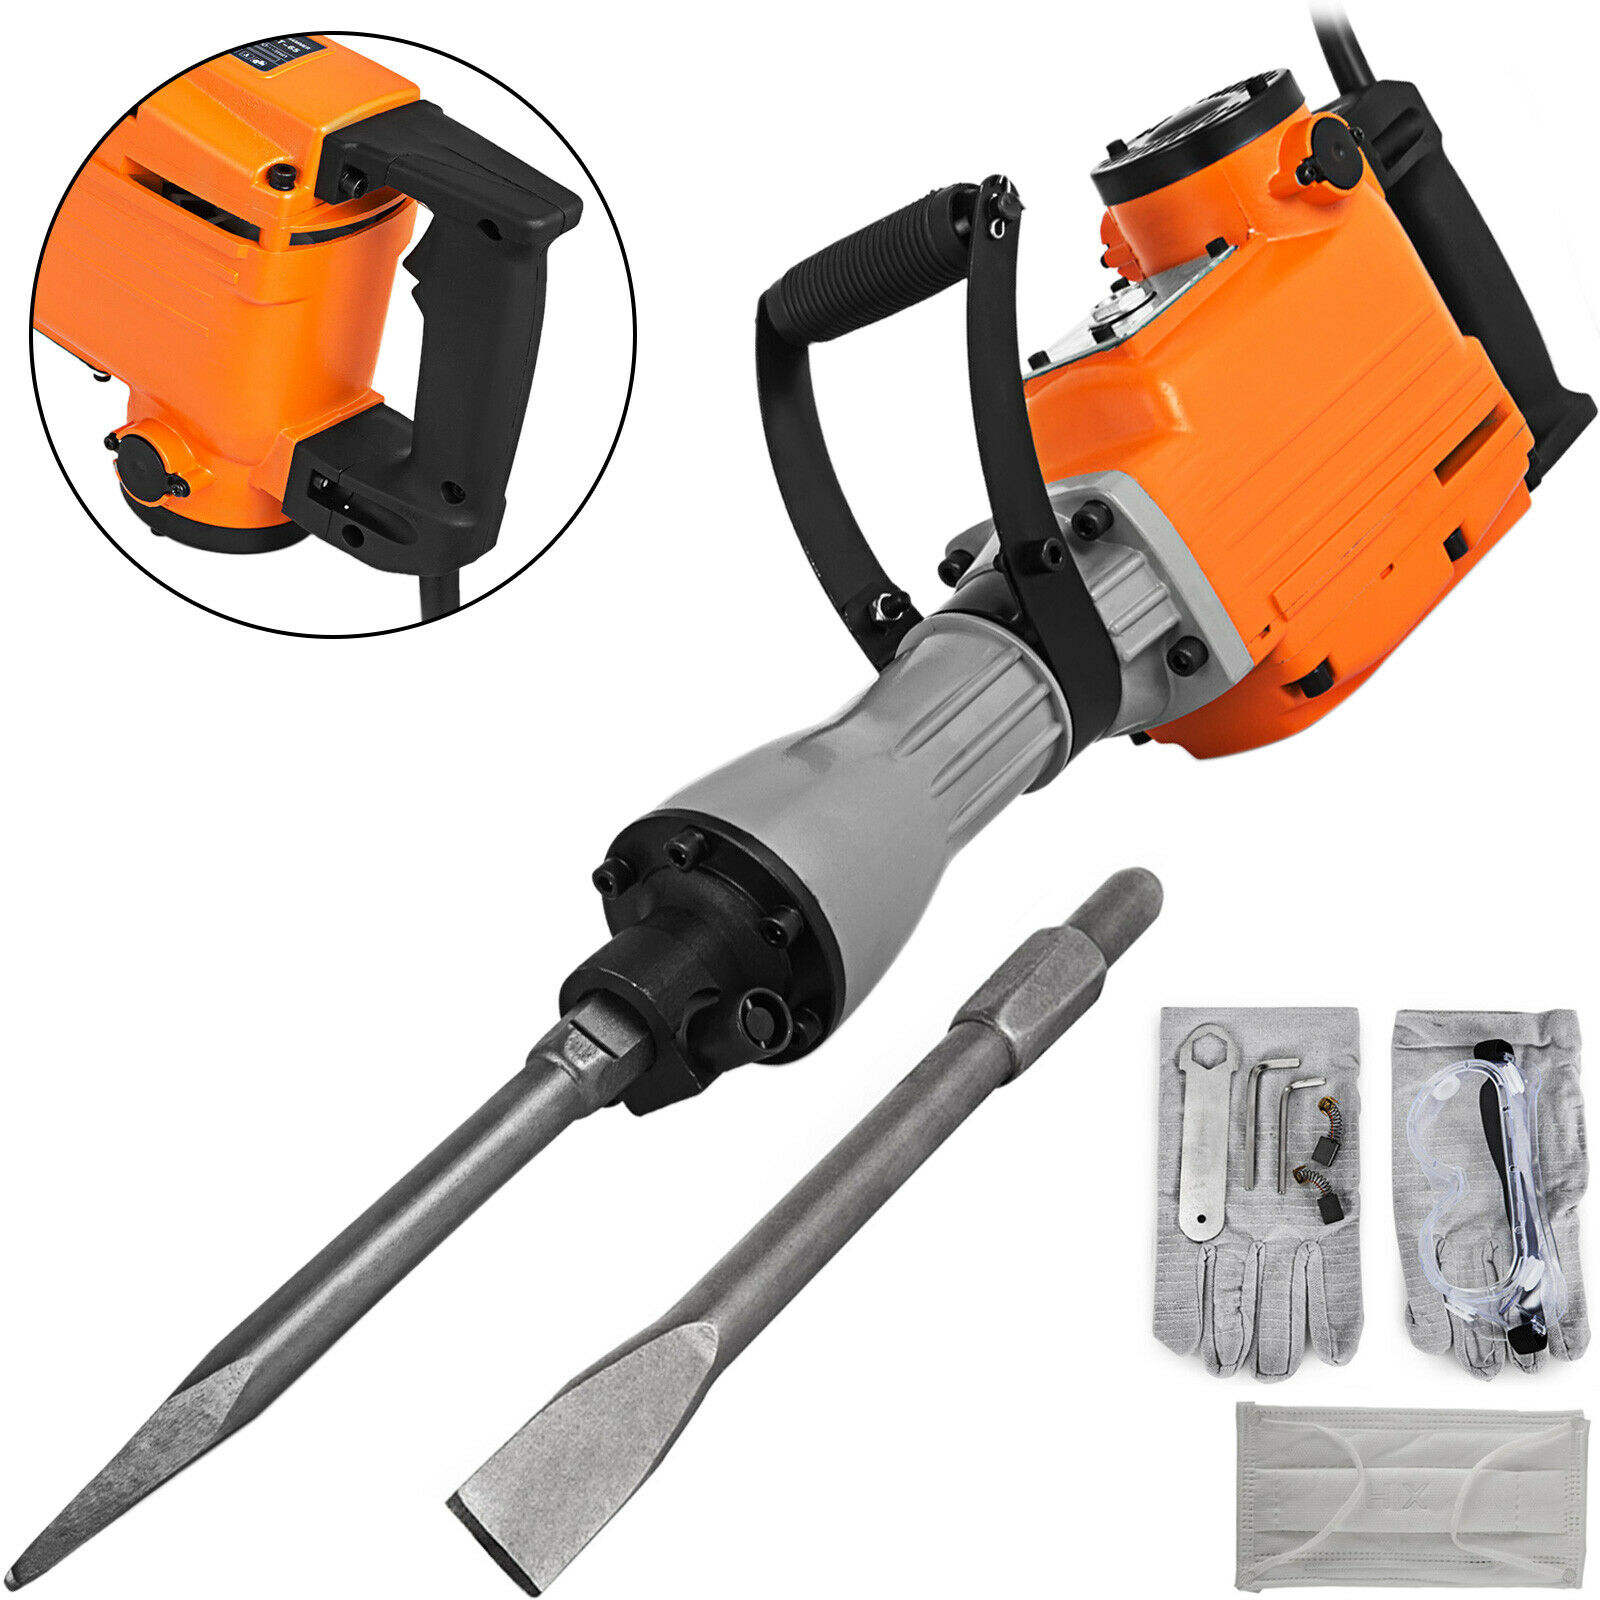 1500W Electric Demolition Hammer Concrete Breaker Jack hammer